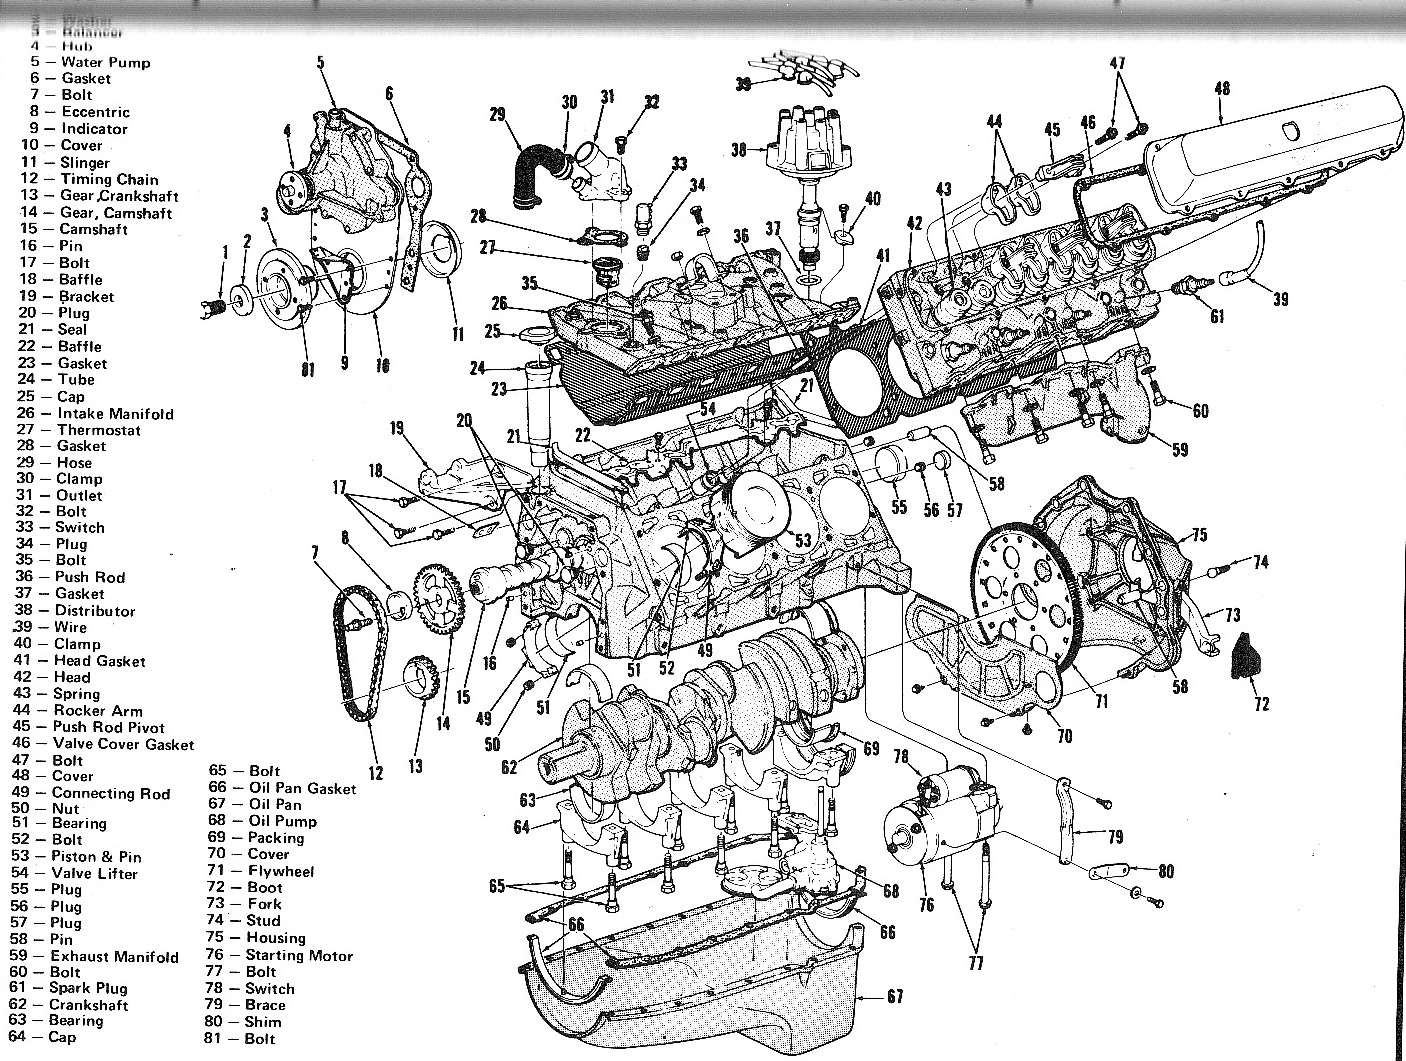 1978 chevy v8 engine diagram